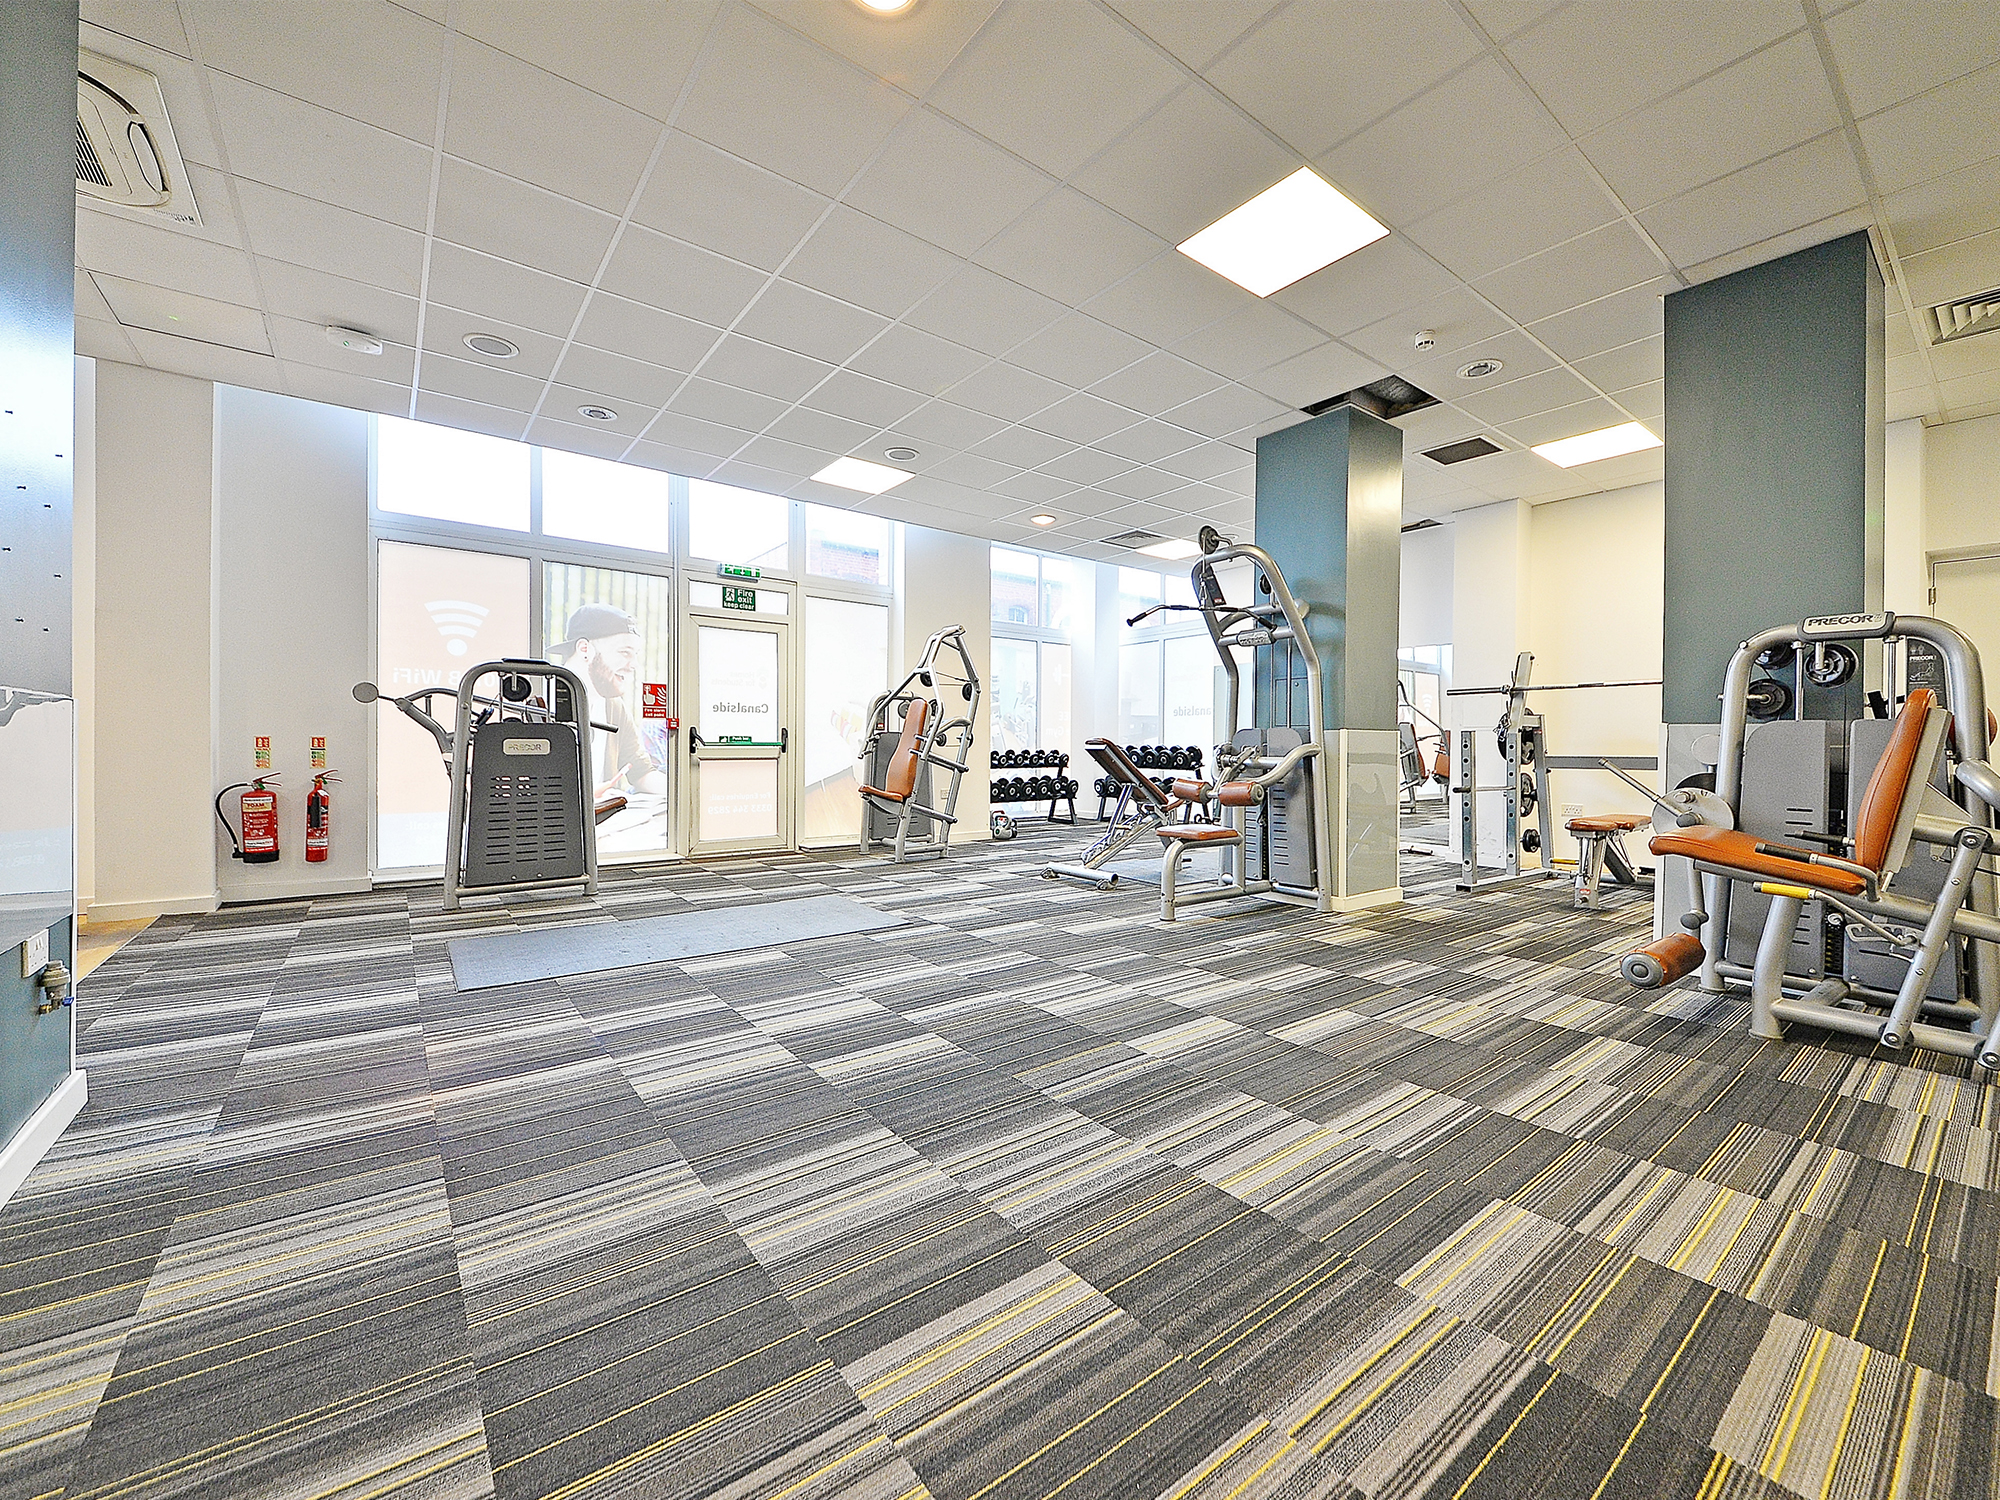 gym at canalside student accommodation in birmingham